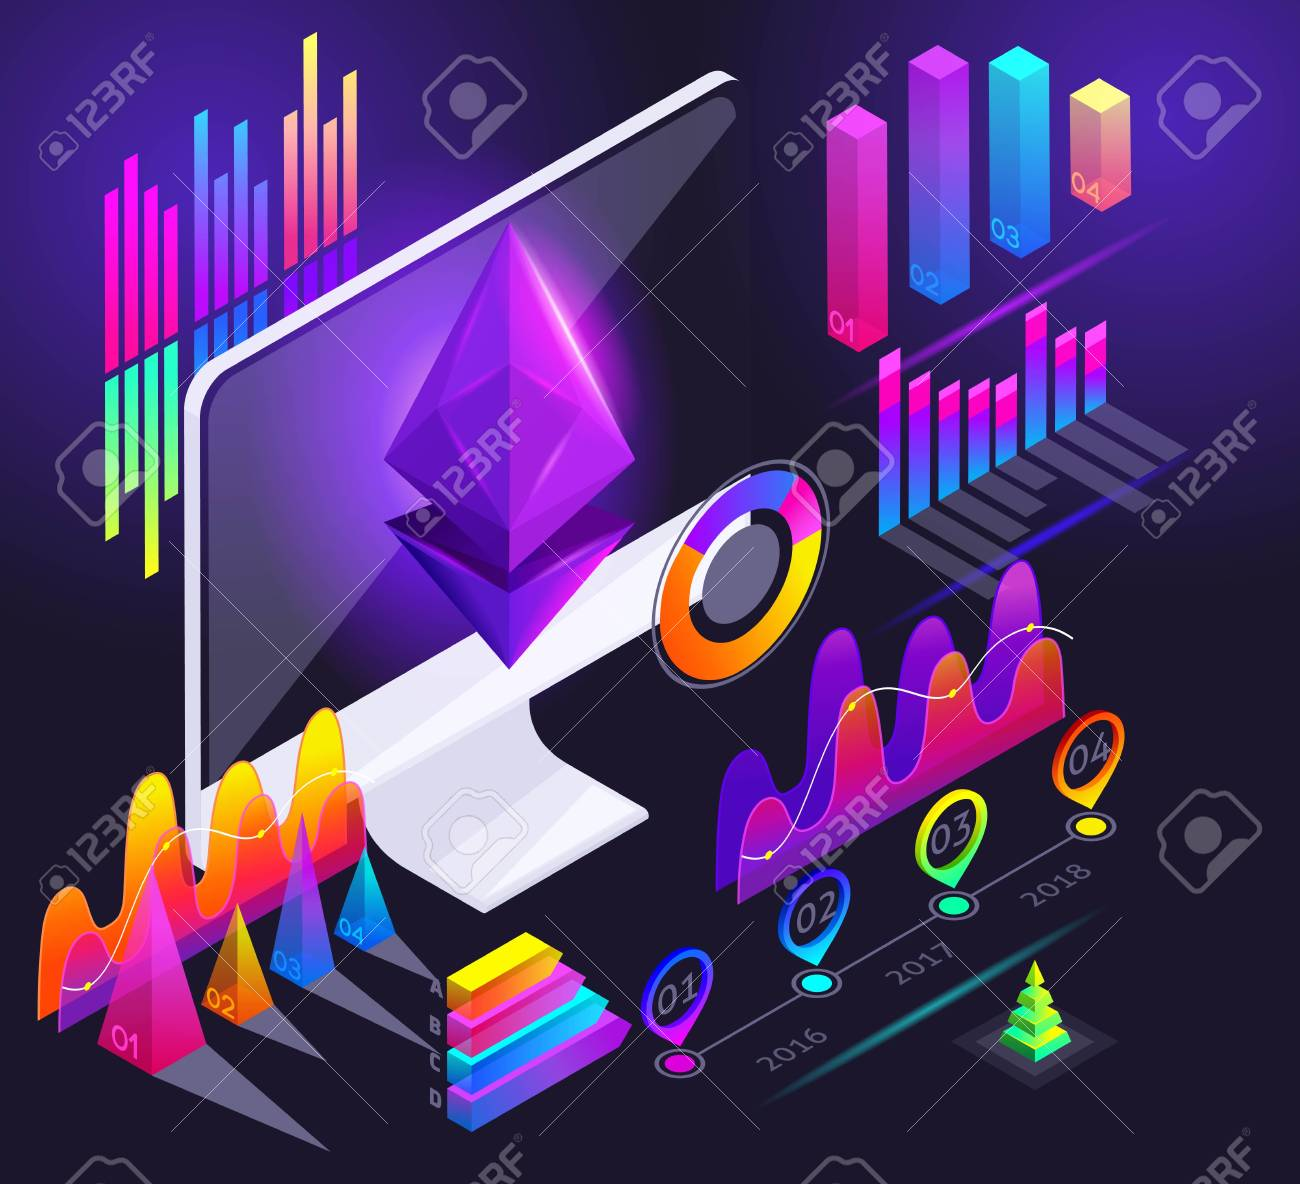 isometric holographic diagrams, graphs, finance analysis, vivid  illustration, profit accounting, crypto